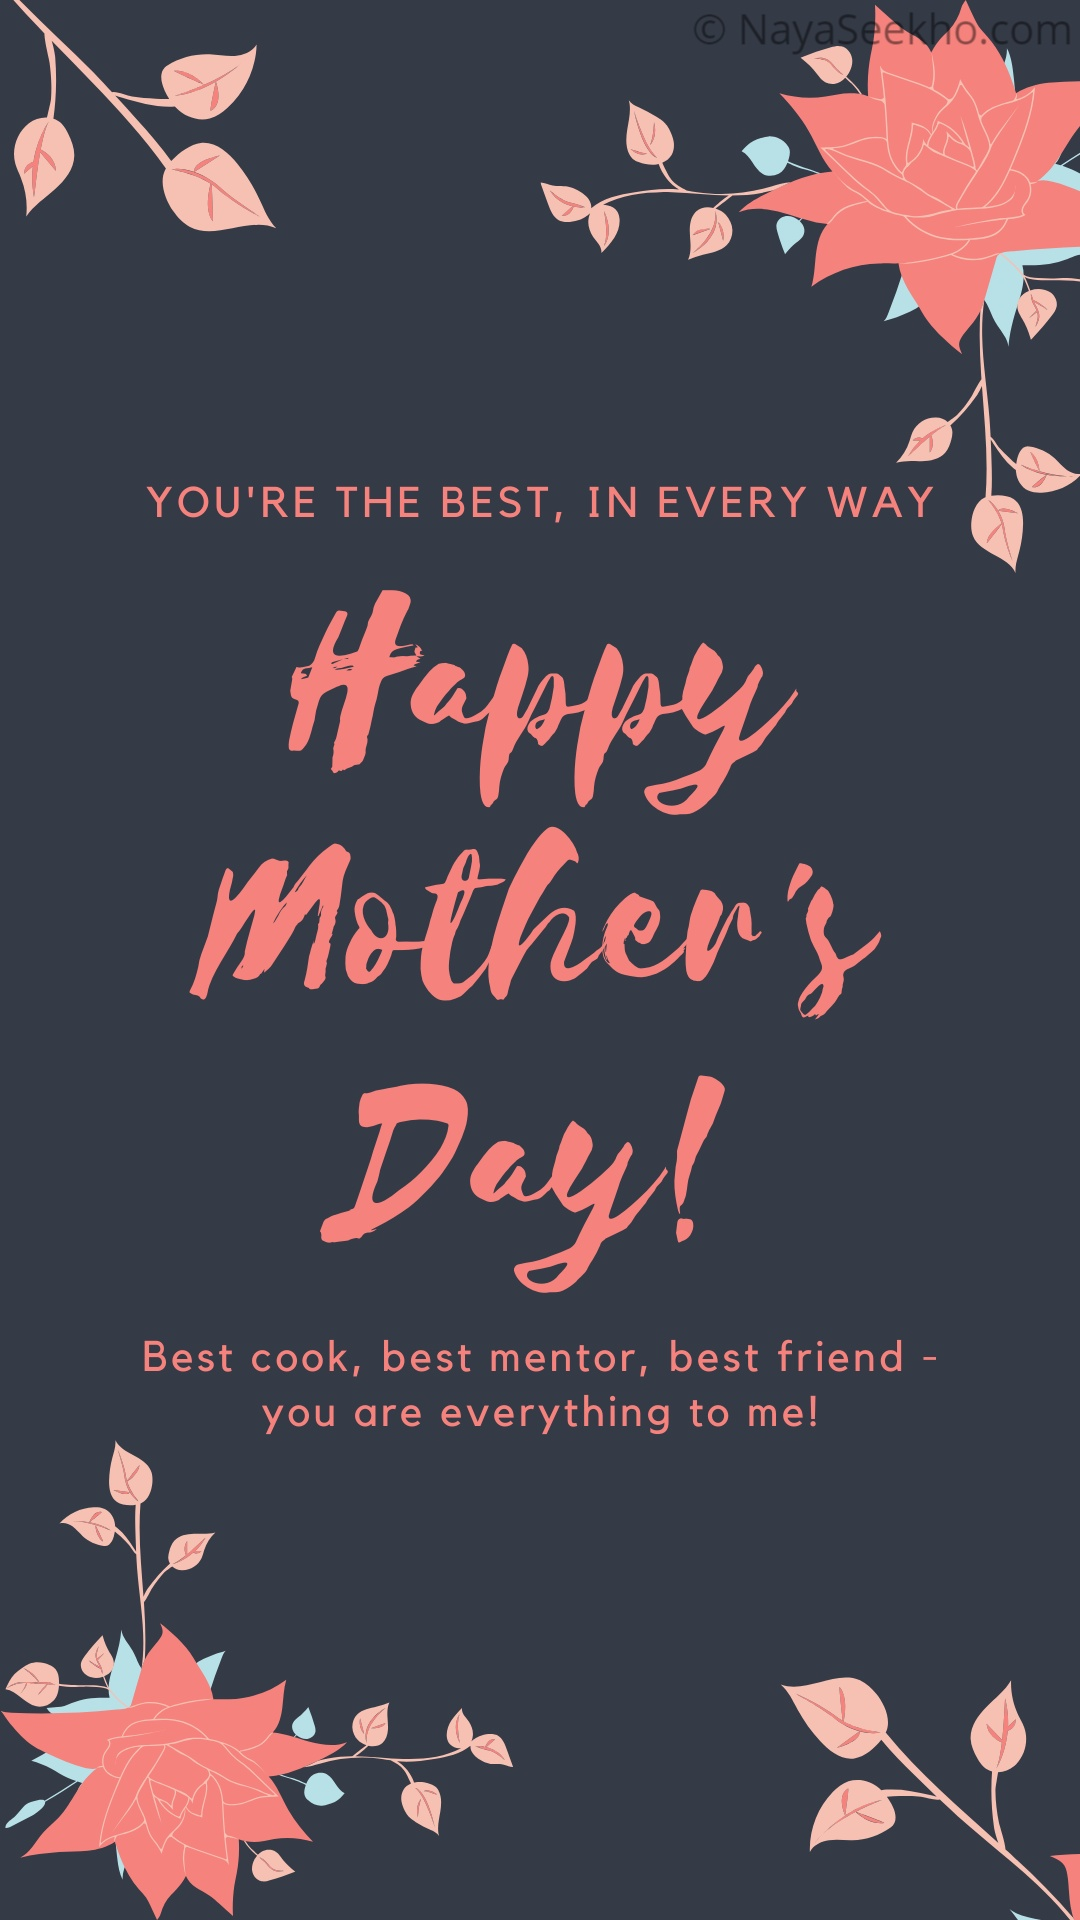 Mothers Day WhatsApp Image